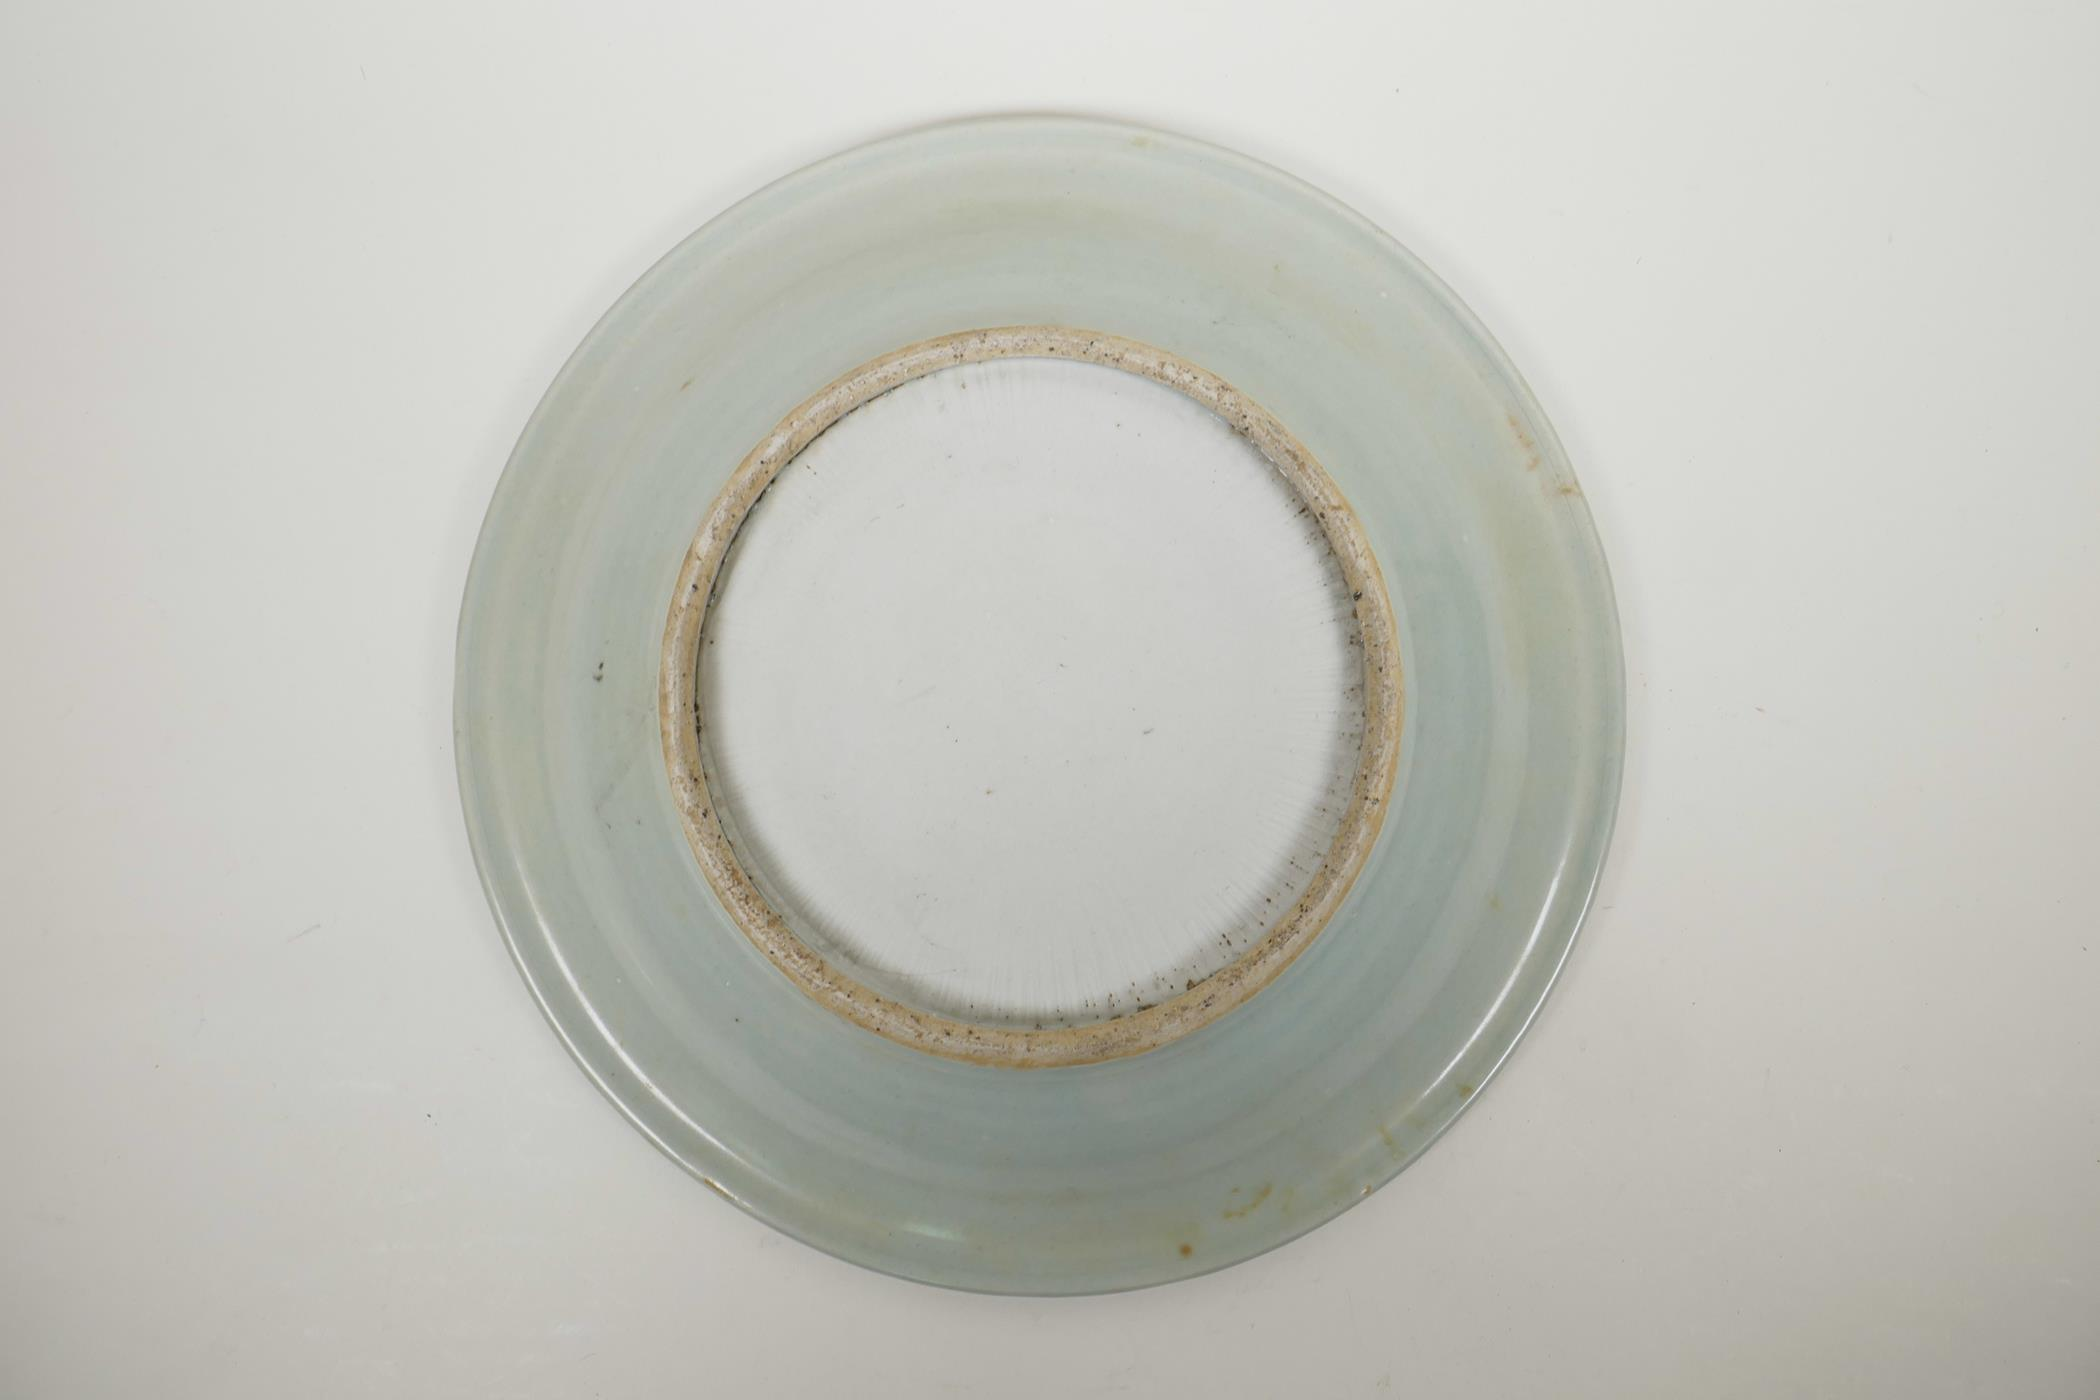 Lot 65 - A Chinese celadon glazed porcelain charger with incised decoration of a warrior and four